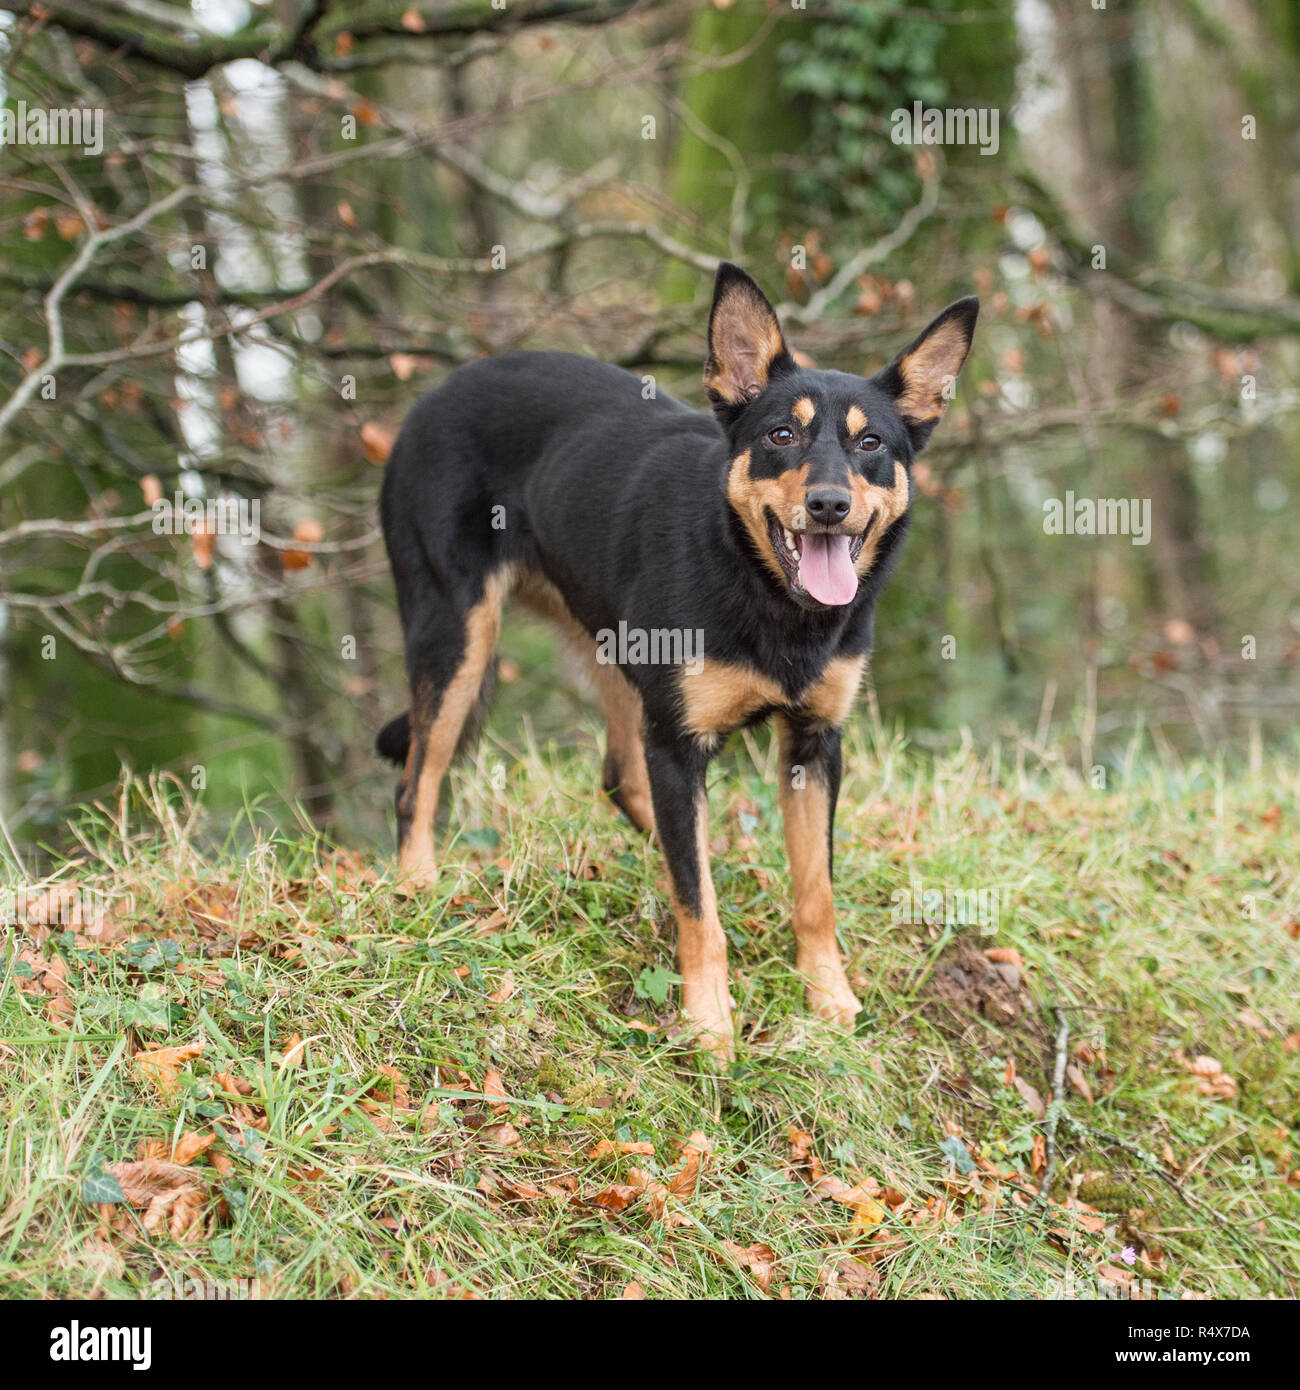 Australian Cattle Dog Sheep High Resolution Stock Photography And Images Alamy